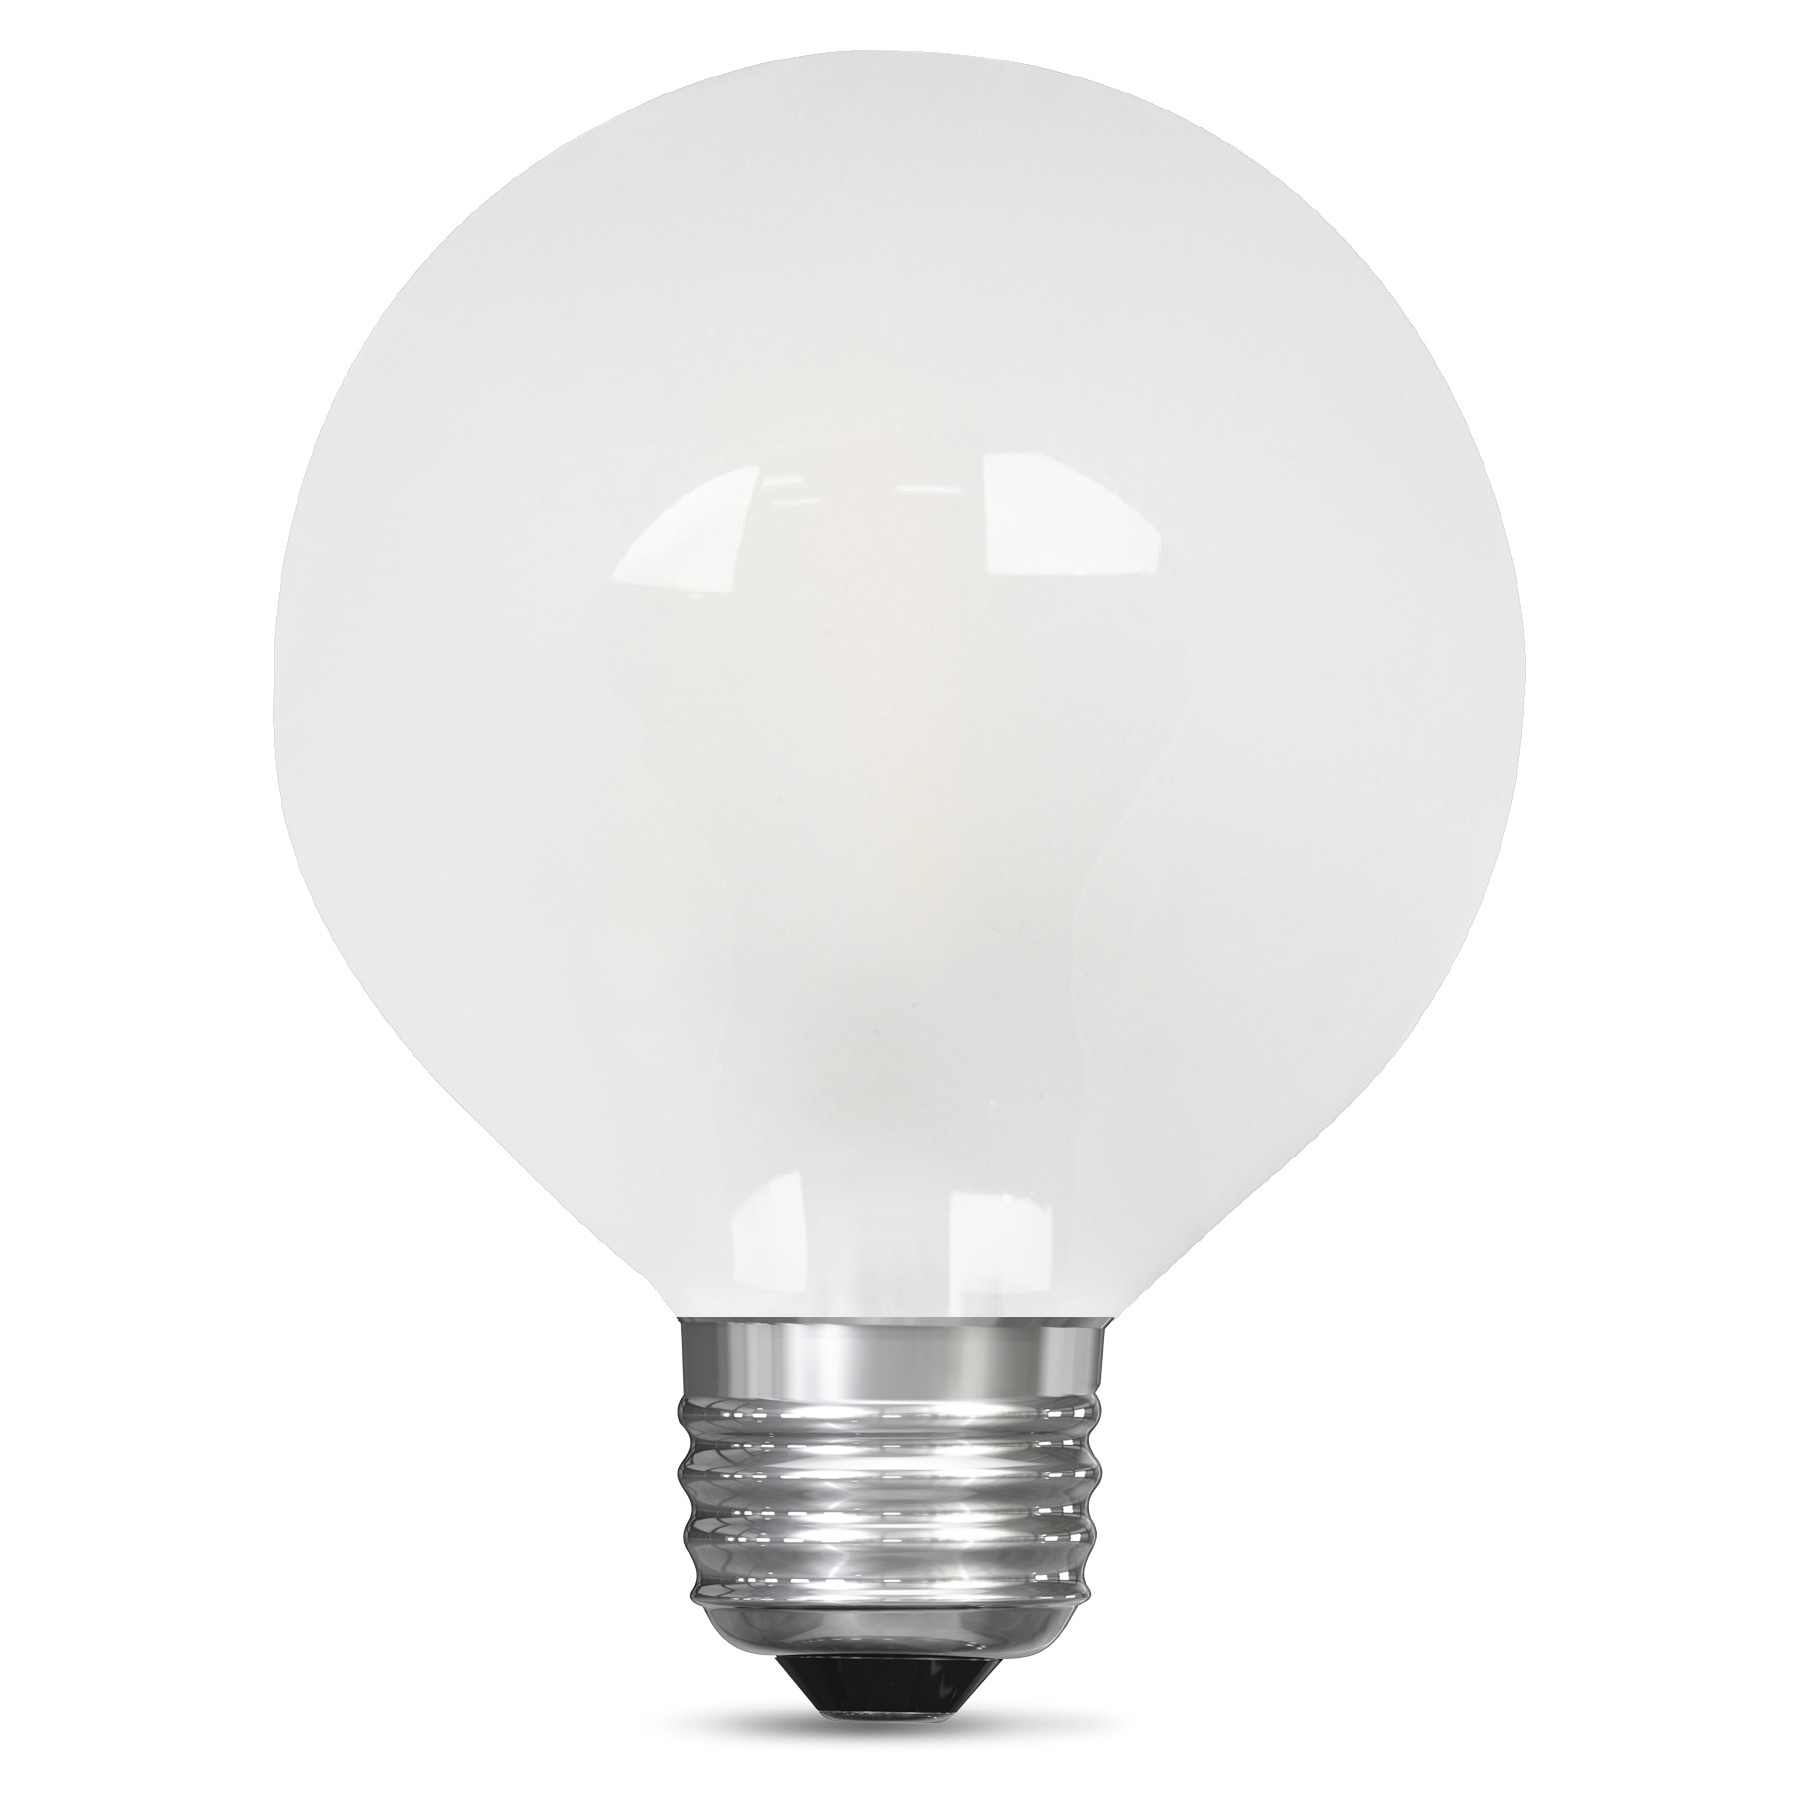 500 Lumen Is Hoeveel Watt 500 Lumen 5000k Dimmable Led Feit Electric